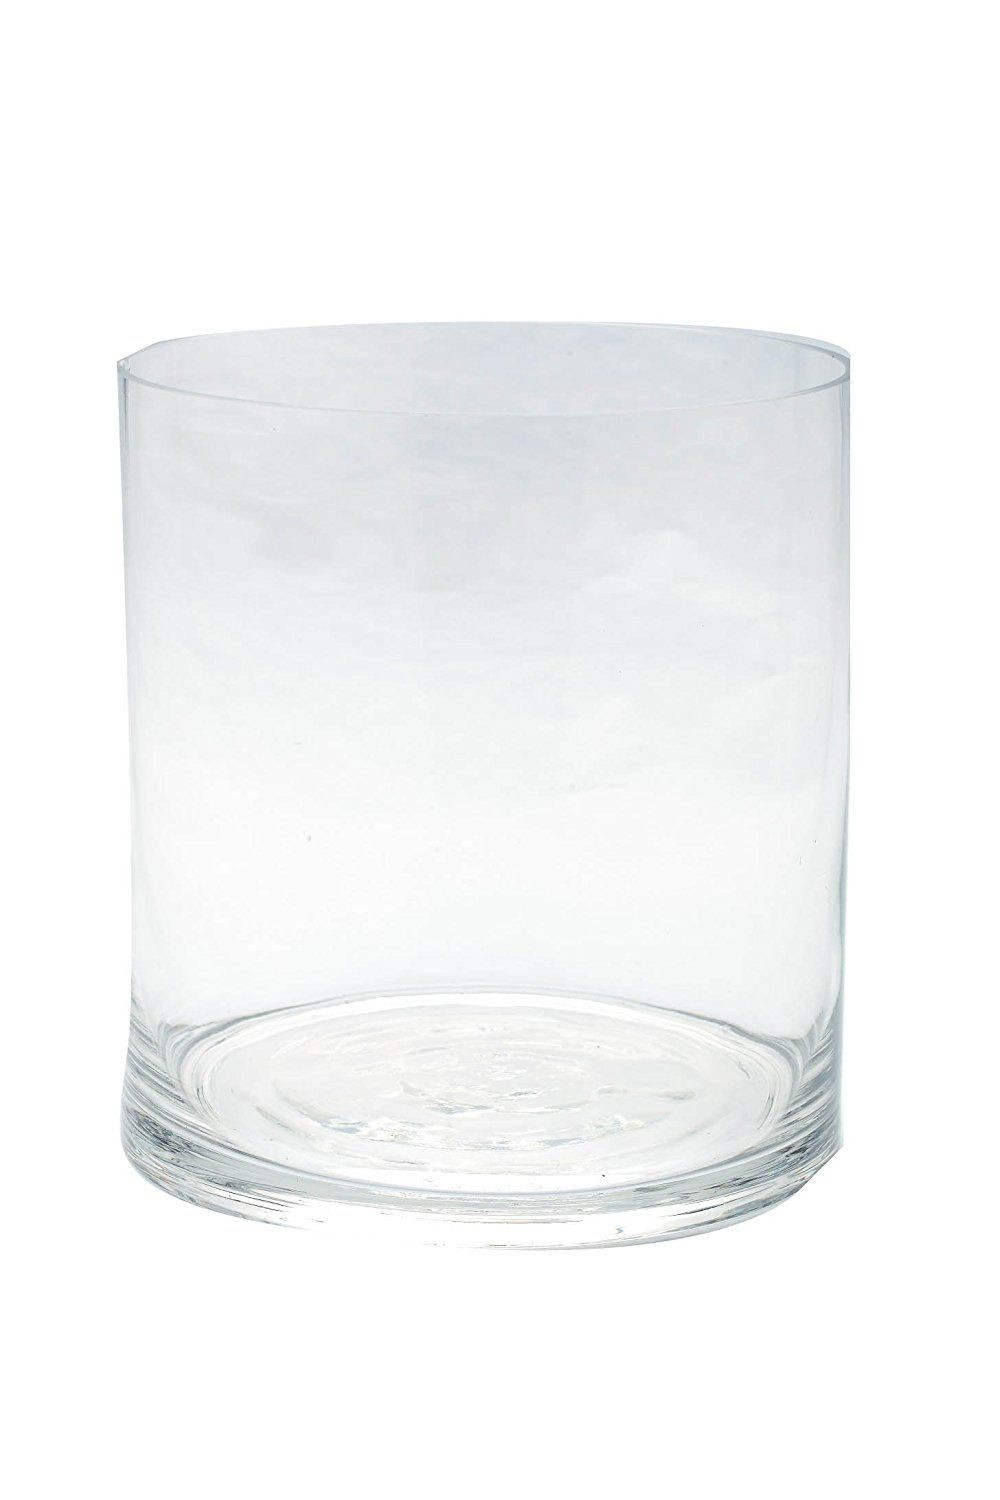 24 glass cylinder vases of diamond star glass 84010c clear cylinder 9 by 10 want with regard to diamond star glass 84010c clear cylinder 9 by 10 want